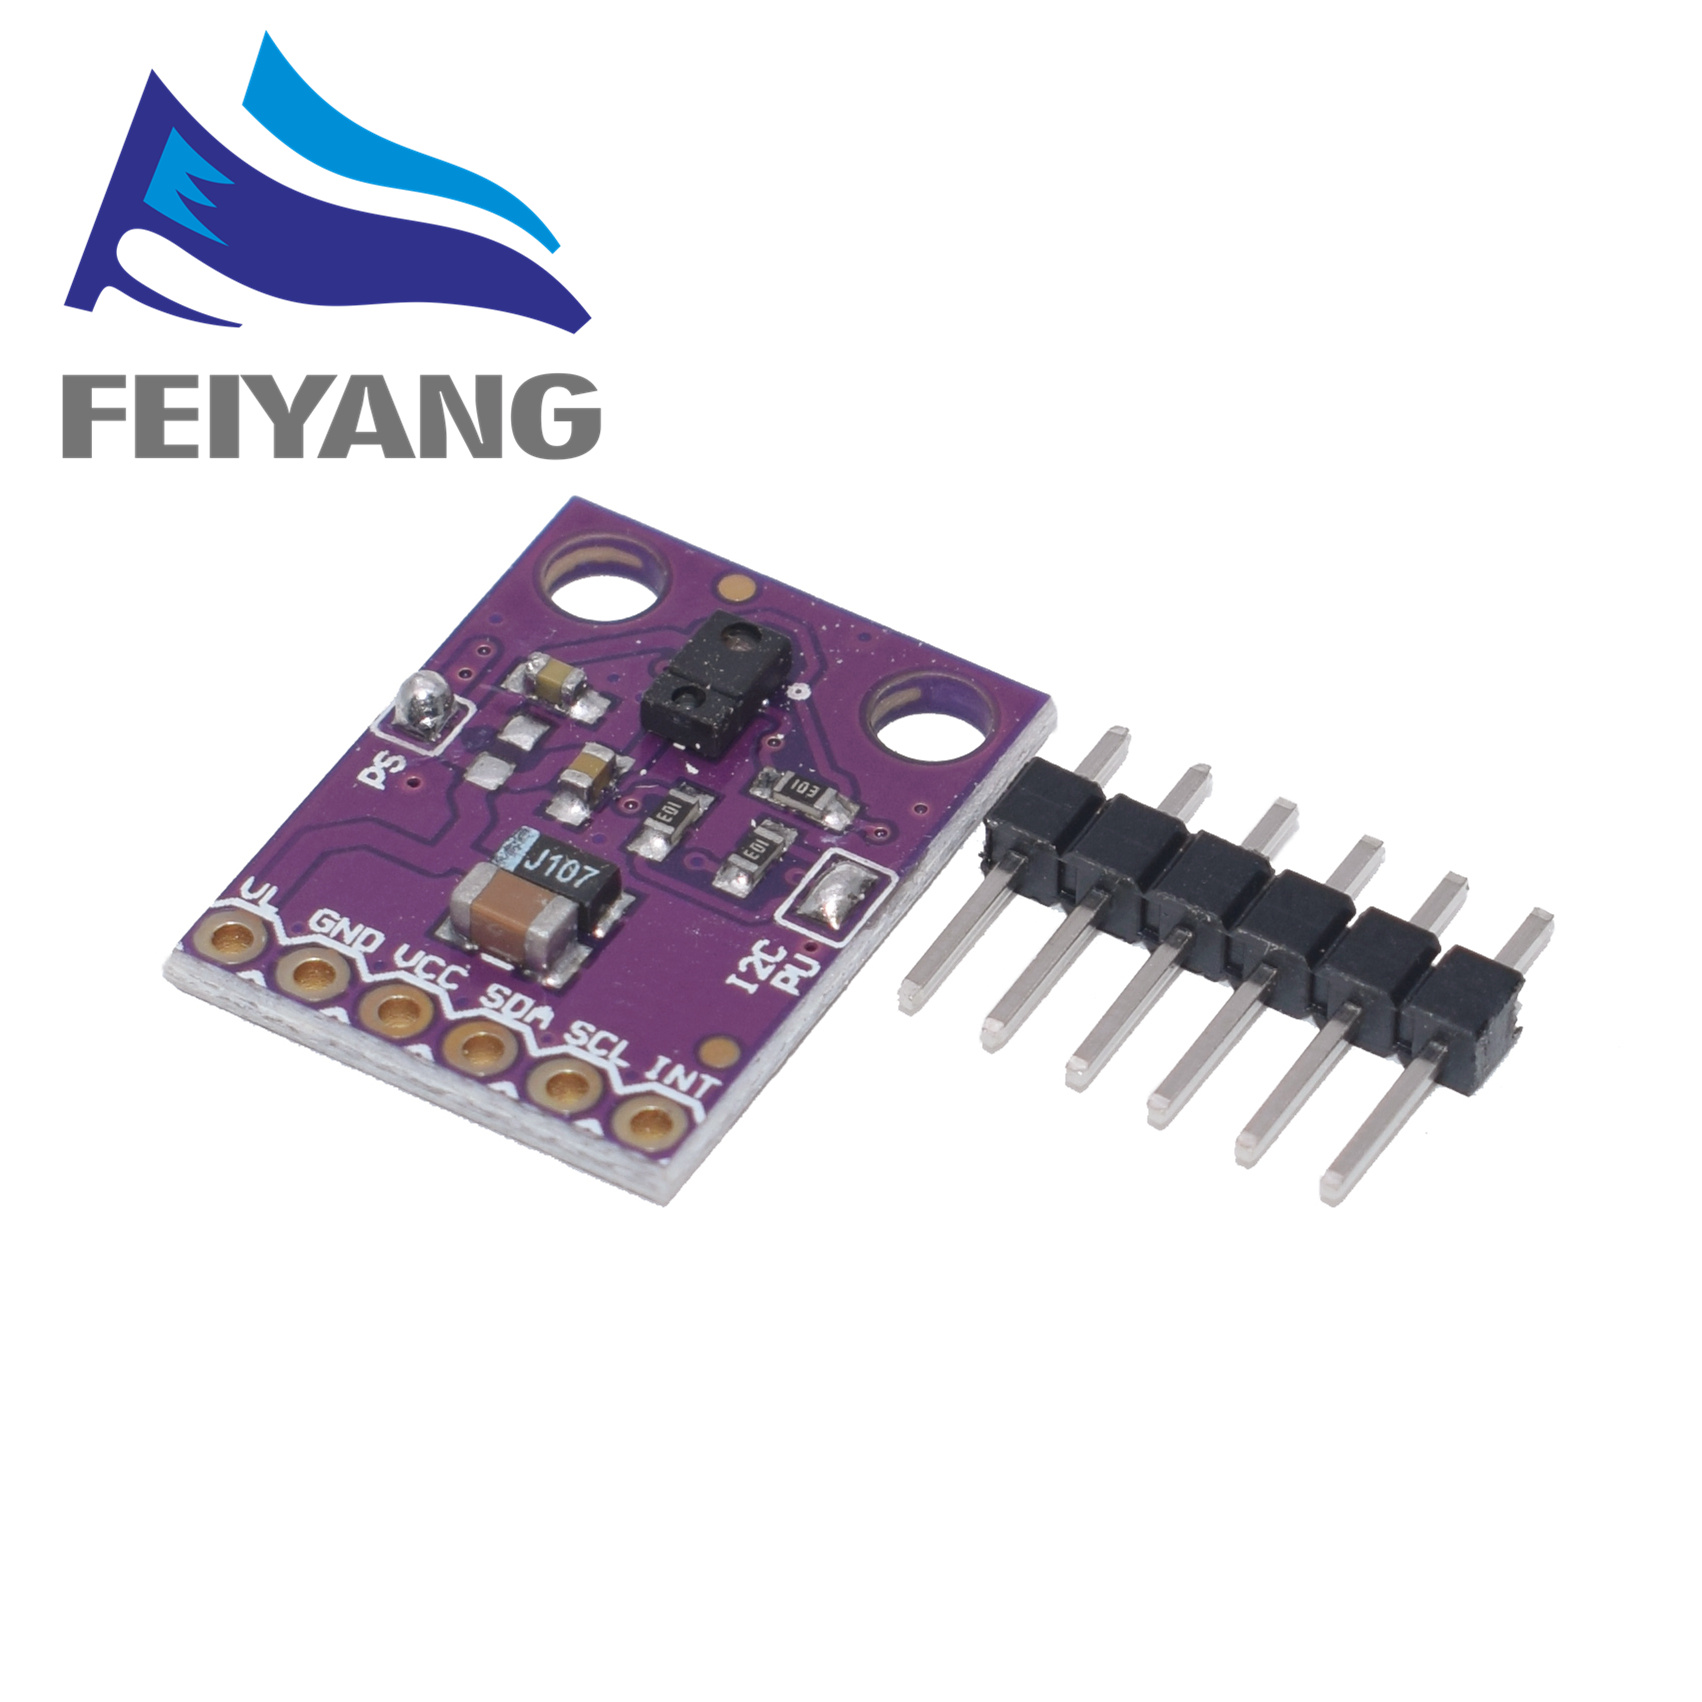 10pcs GY 9960 3.3 APDS 9960 proximity detection and non contact gesture detection RGB and Gesture-in Sensors from Electronic Components & Supplies